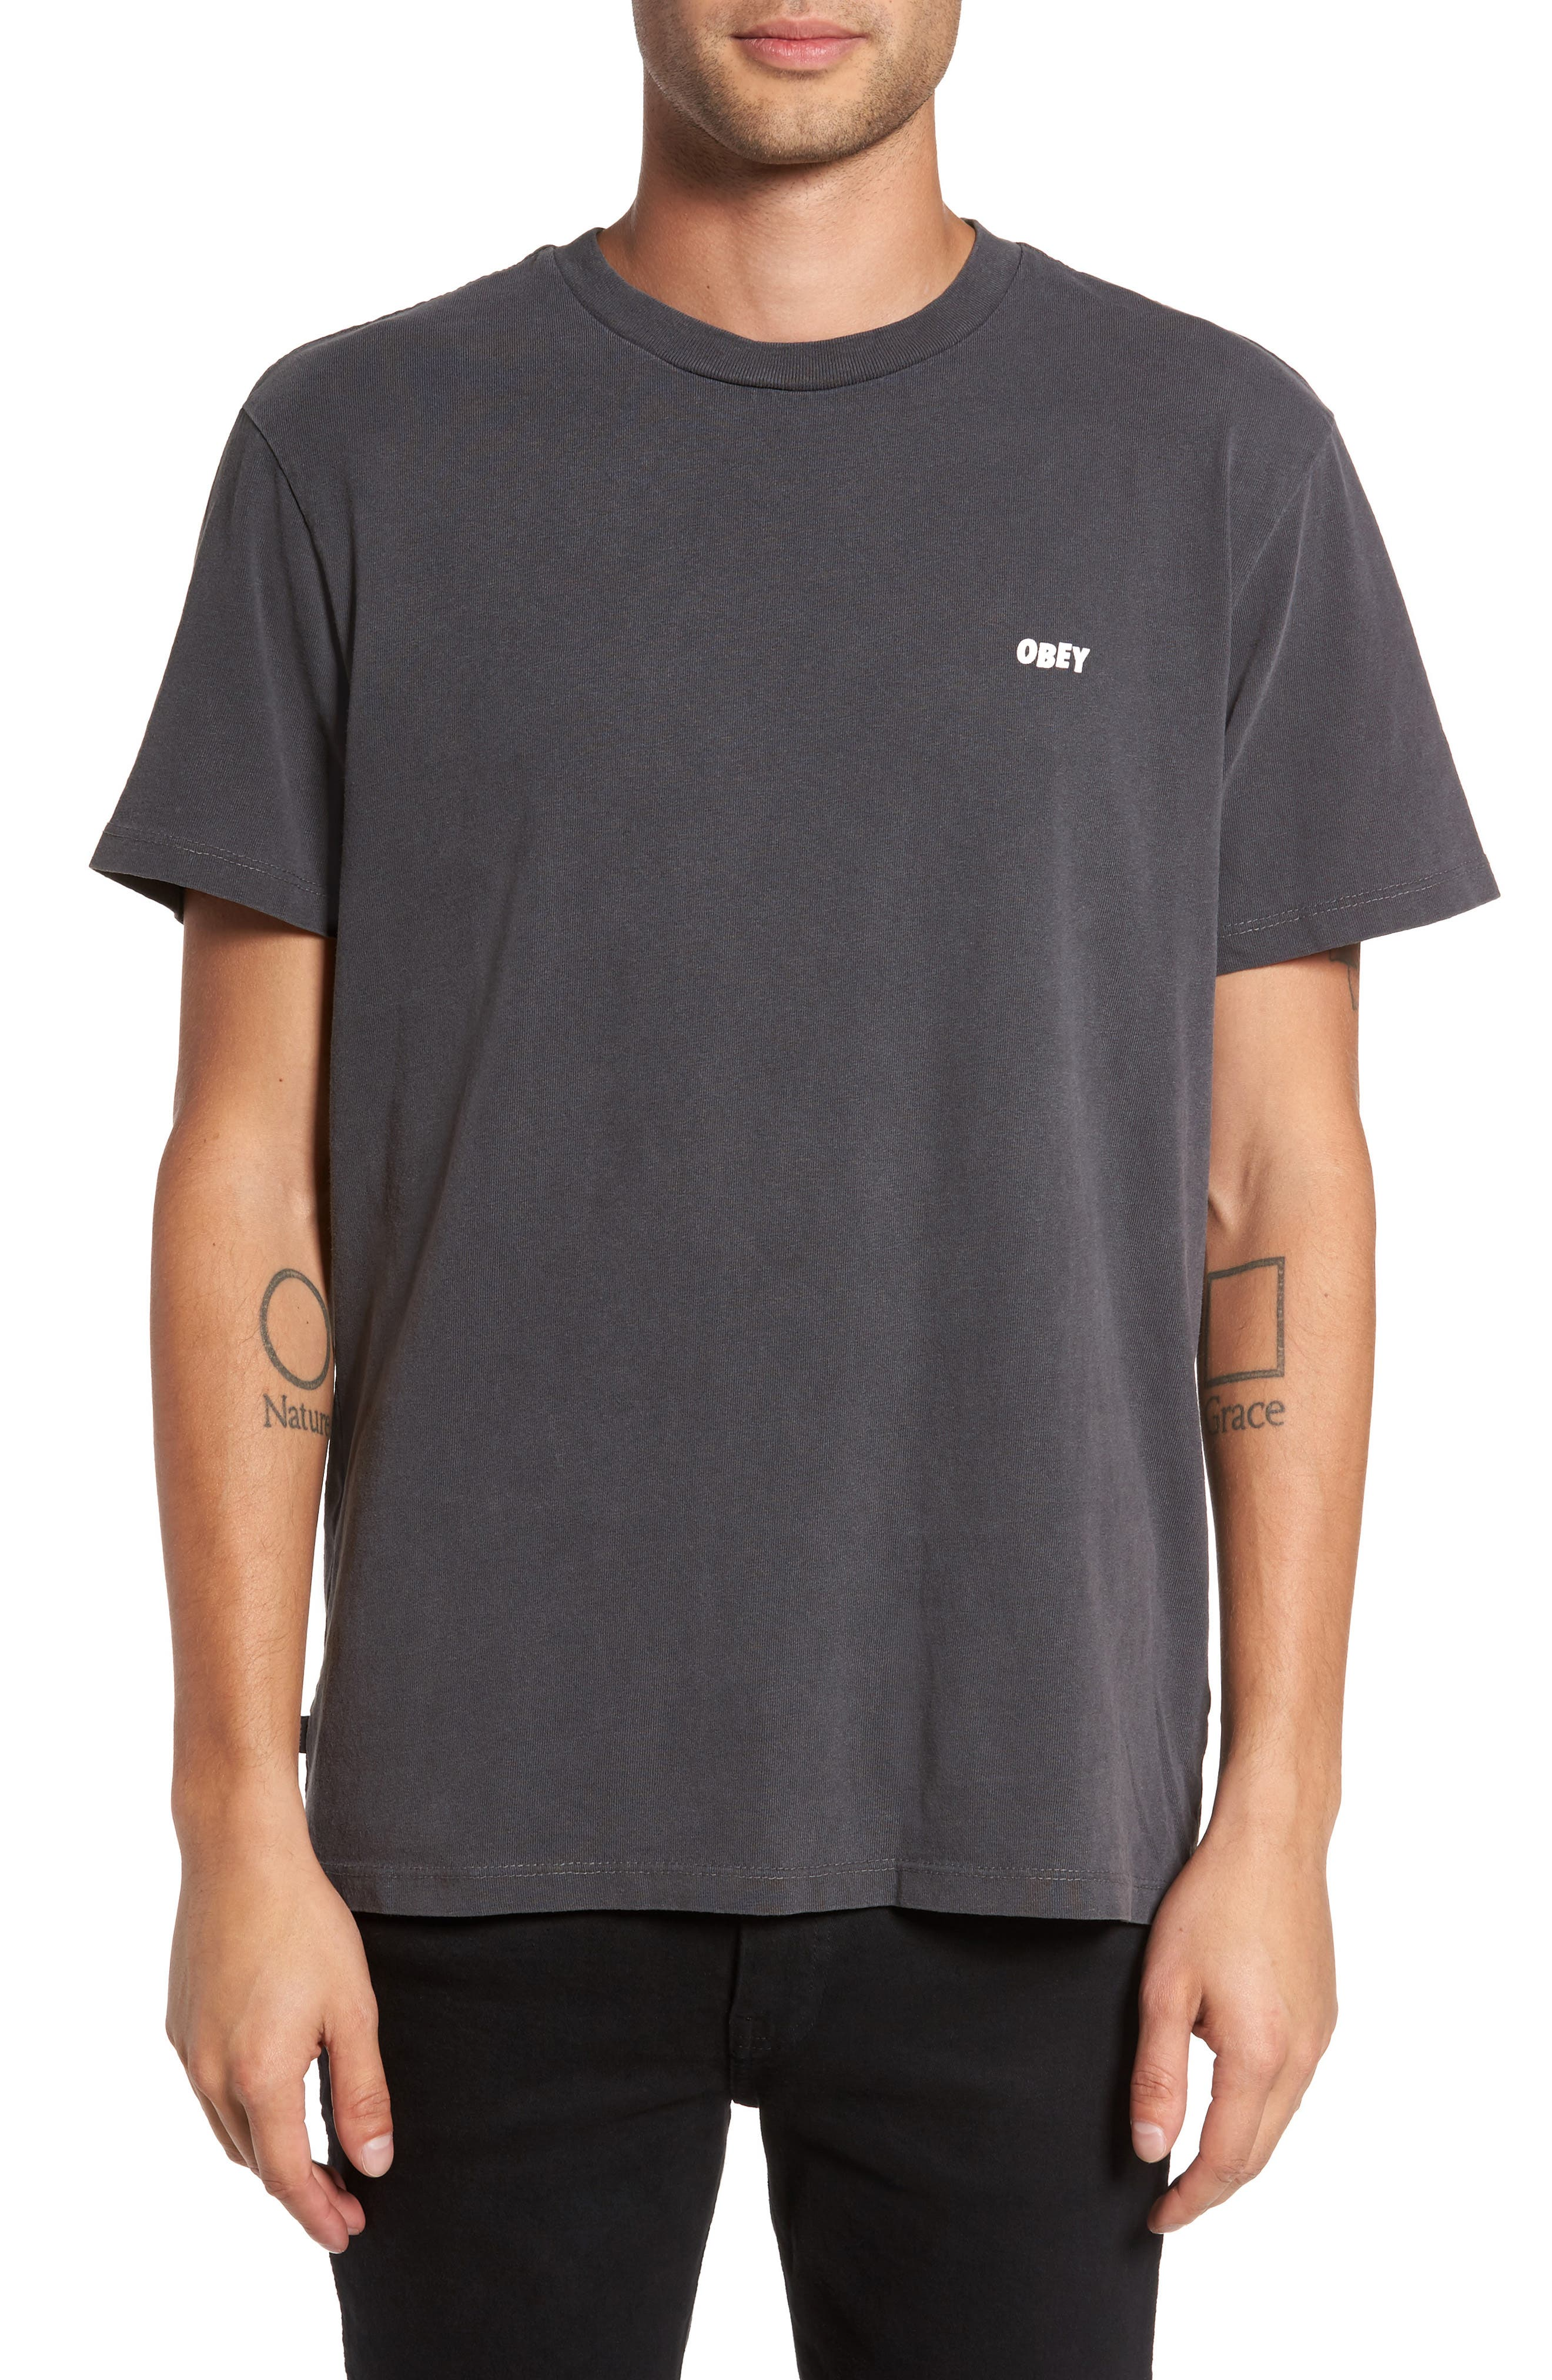 Main Image - Obey Eyes Graphic T-Shirt